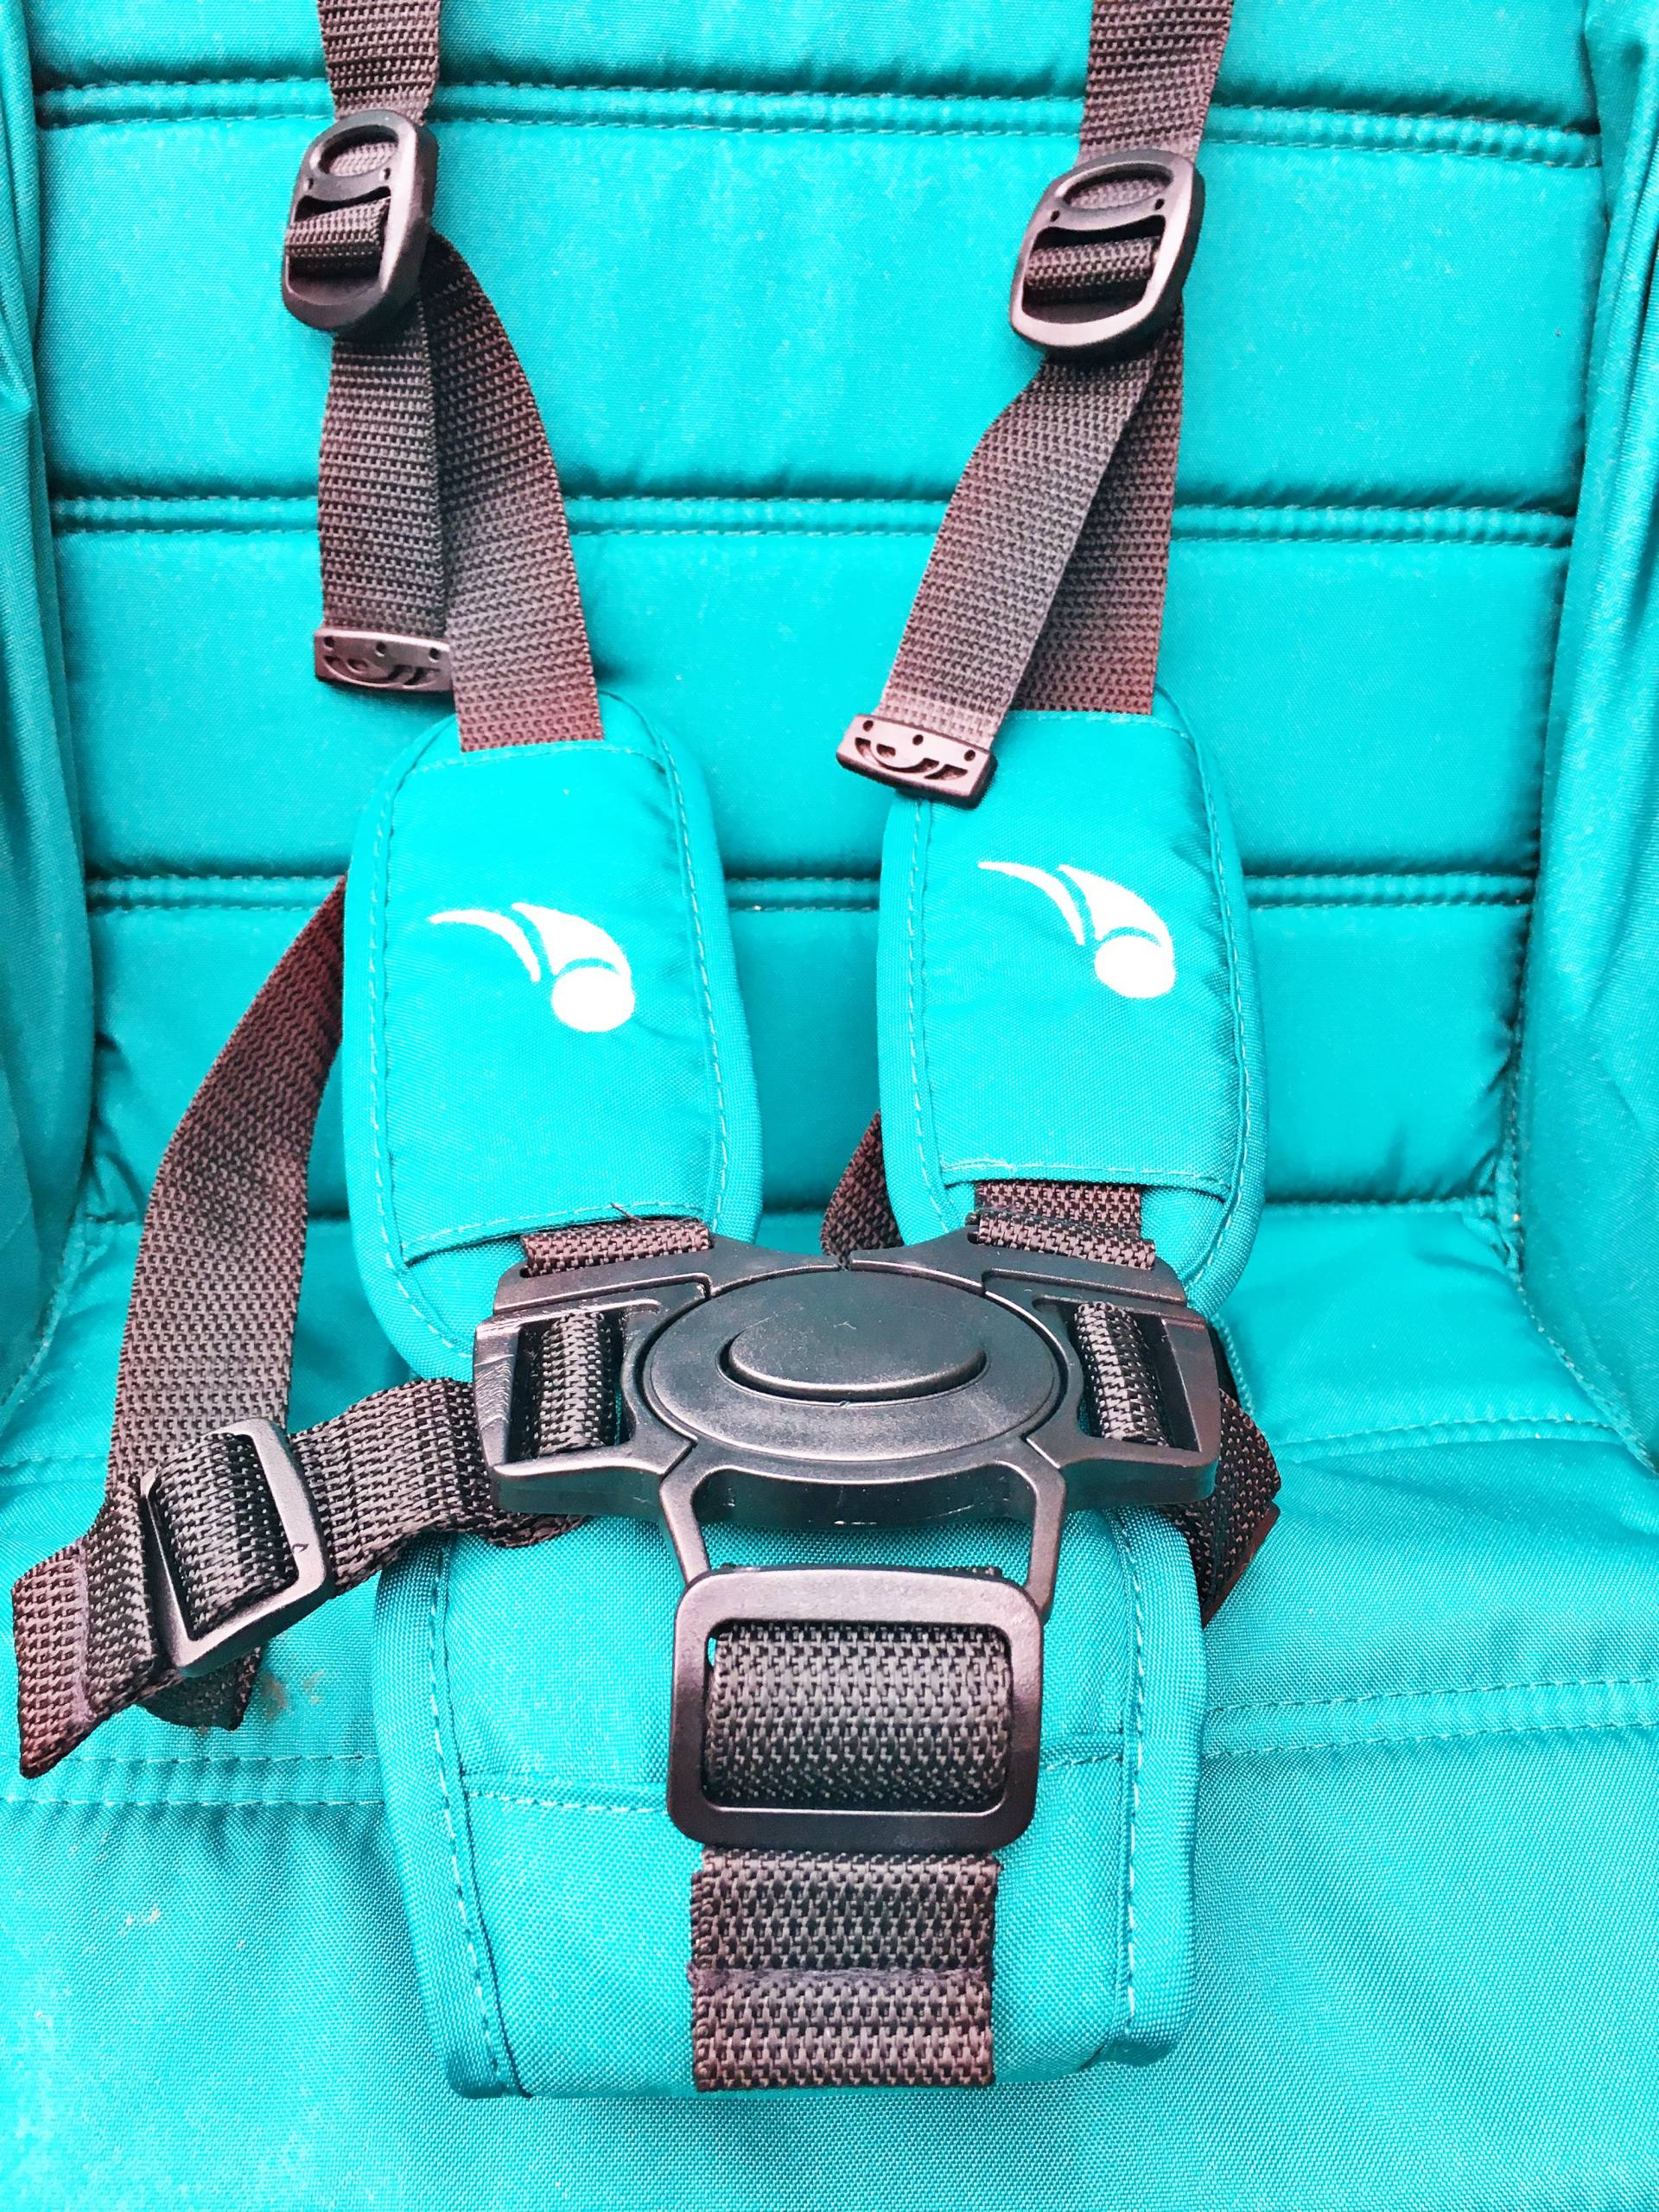 The Baby Jogger City Tour harness